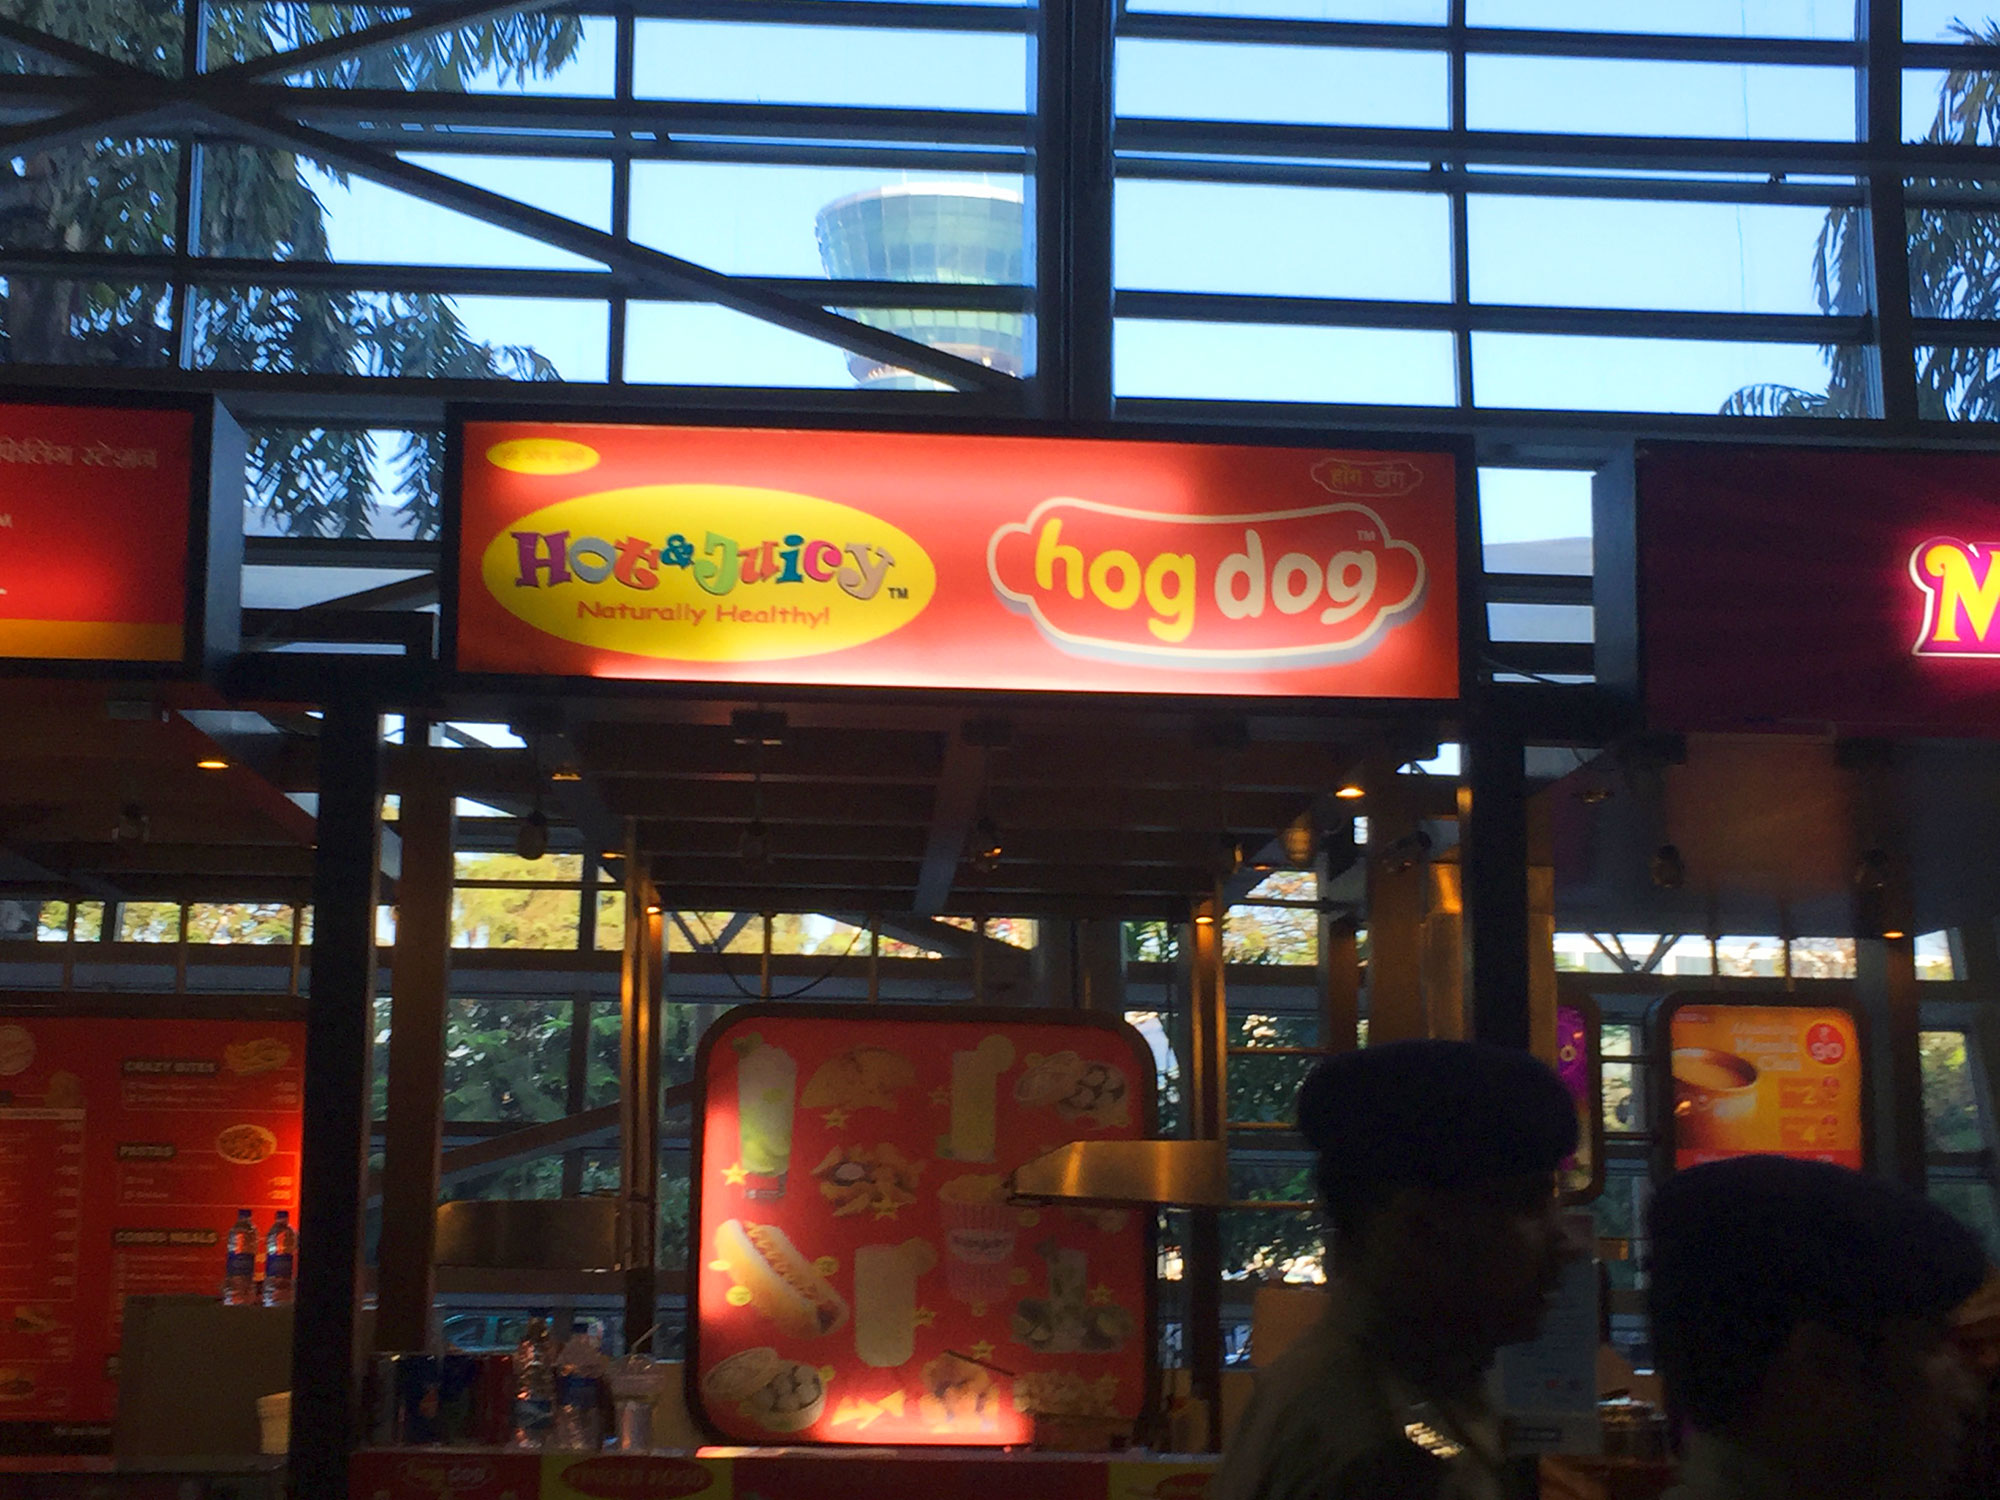 HogDog!  We steered clear of this Indian fast food joint.  A meal eaten at HogDog on a previous trip to India caused quite a problem to a few travelers, myself not included.